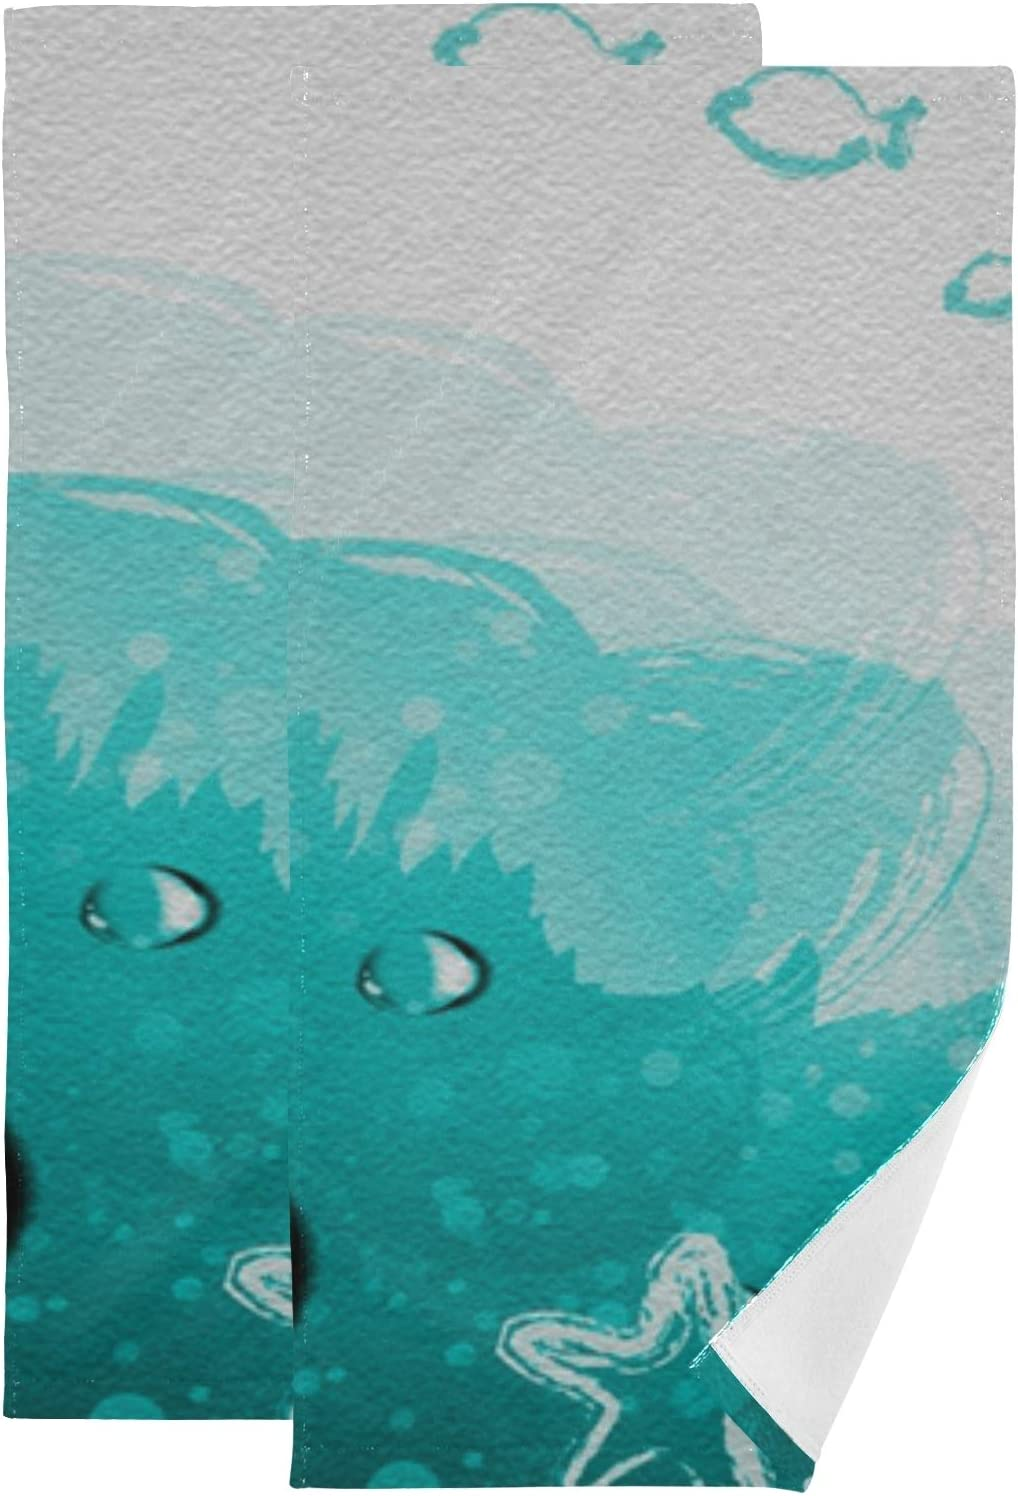 Art Painting Ocean Starfish Hand Towel Set Ultra Soft Absorbent Quick-Dry Hand Towels for Bath Fitness, Bathroom, Sports, Yoga, Travel (2-Pack ,28.3x14.4in)